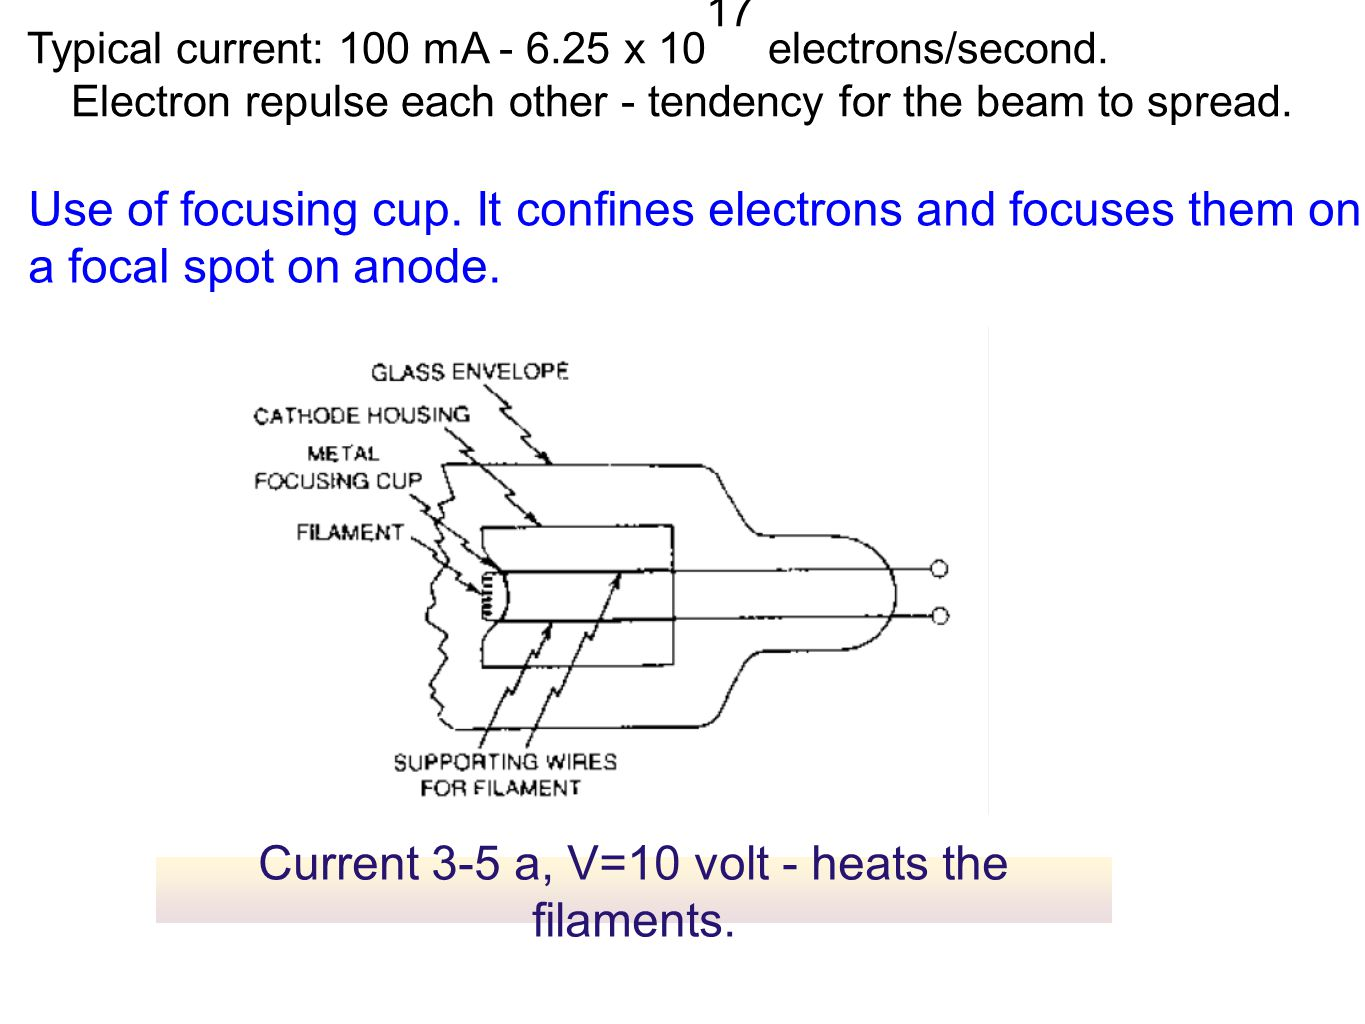 Typical current: 100 mA - 6.25 x 10 17 electrons/second.